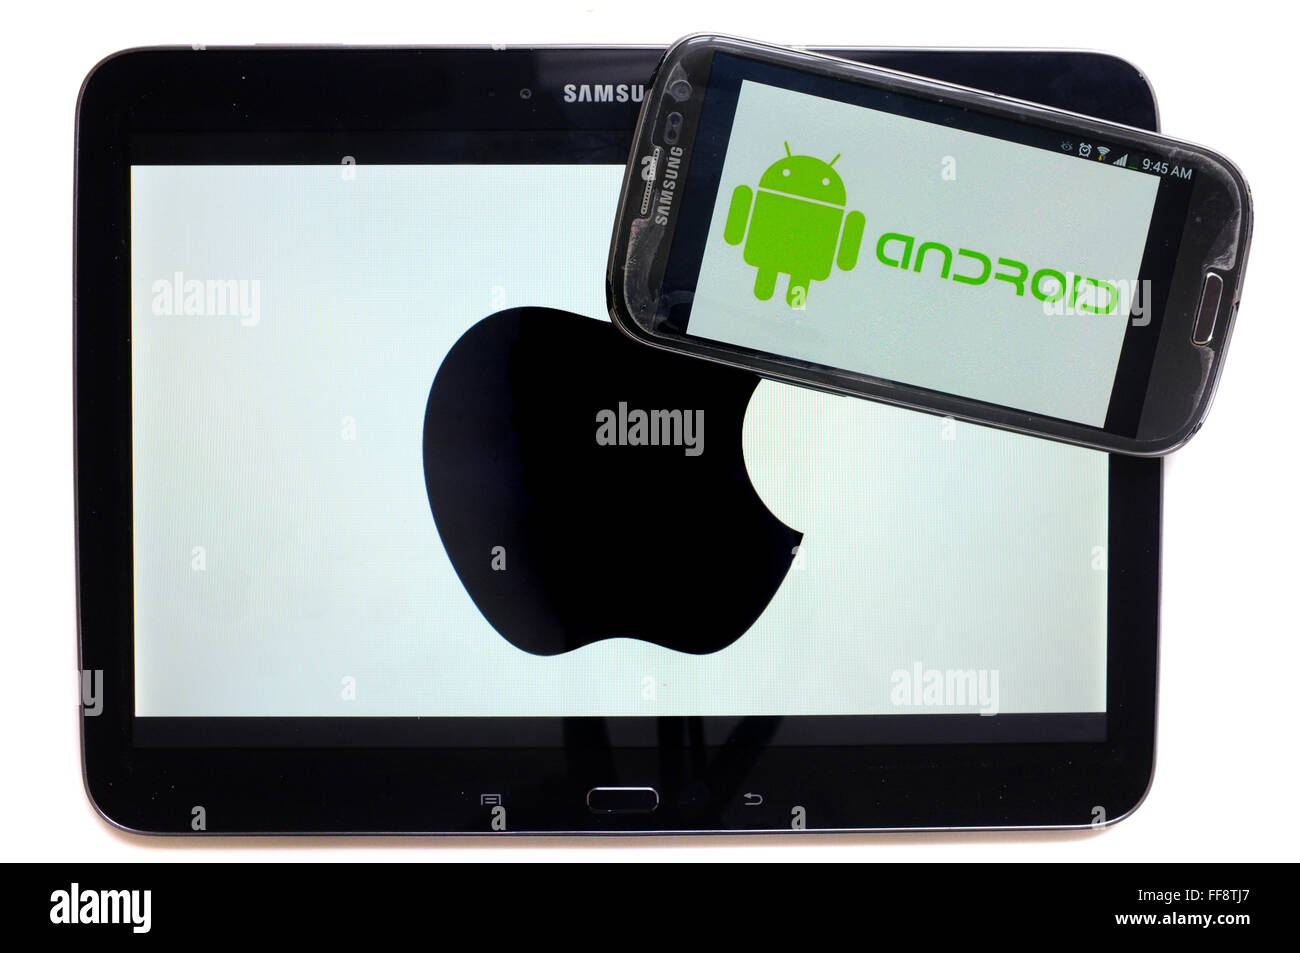 The Android logo on a smartphone screen on top of a tablet displaying the Apple logo photographed against a white - Stock Image